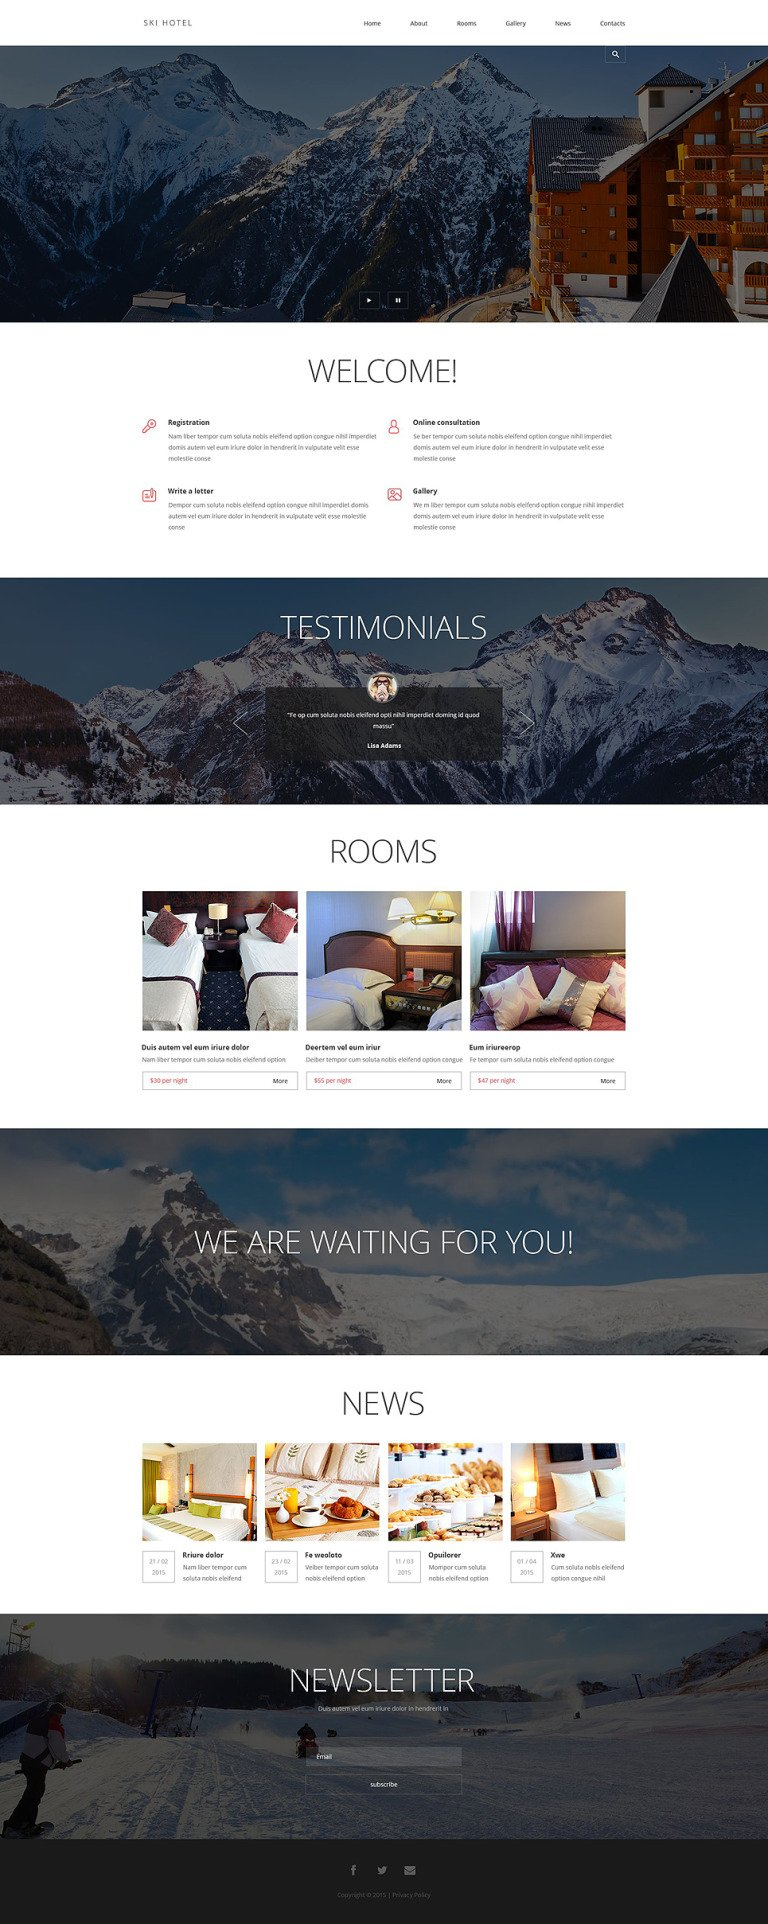 Hotels and Motels Joomla Template New Screenshots BIG